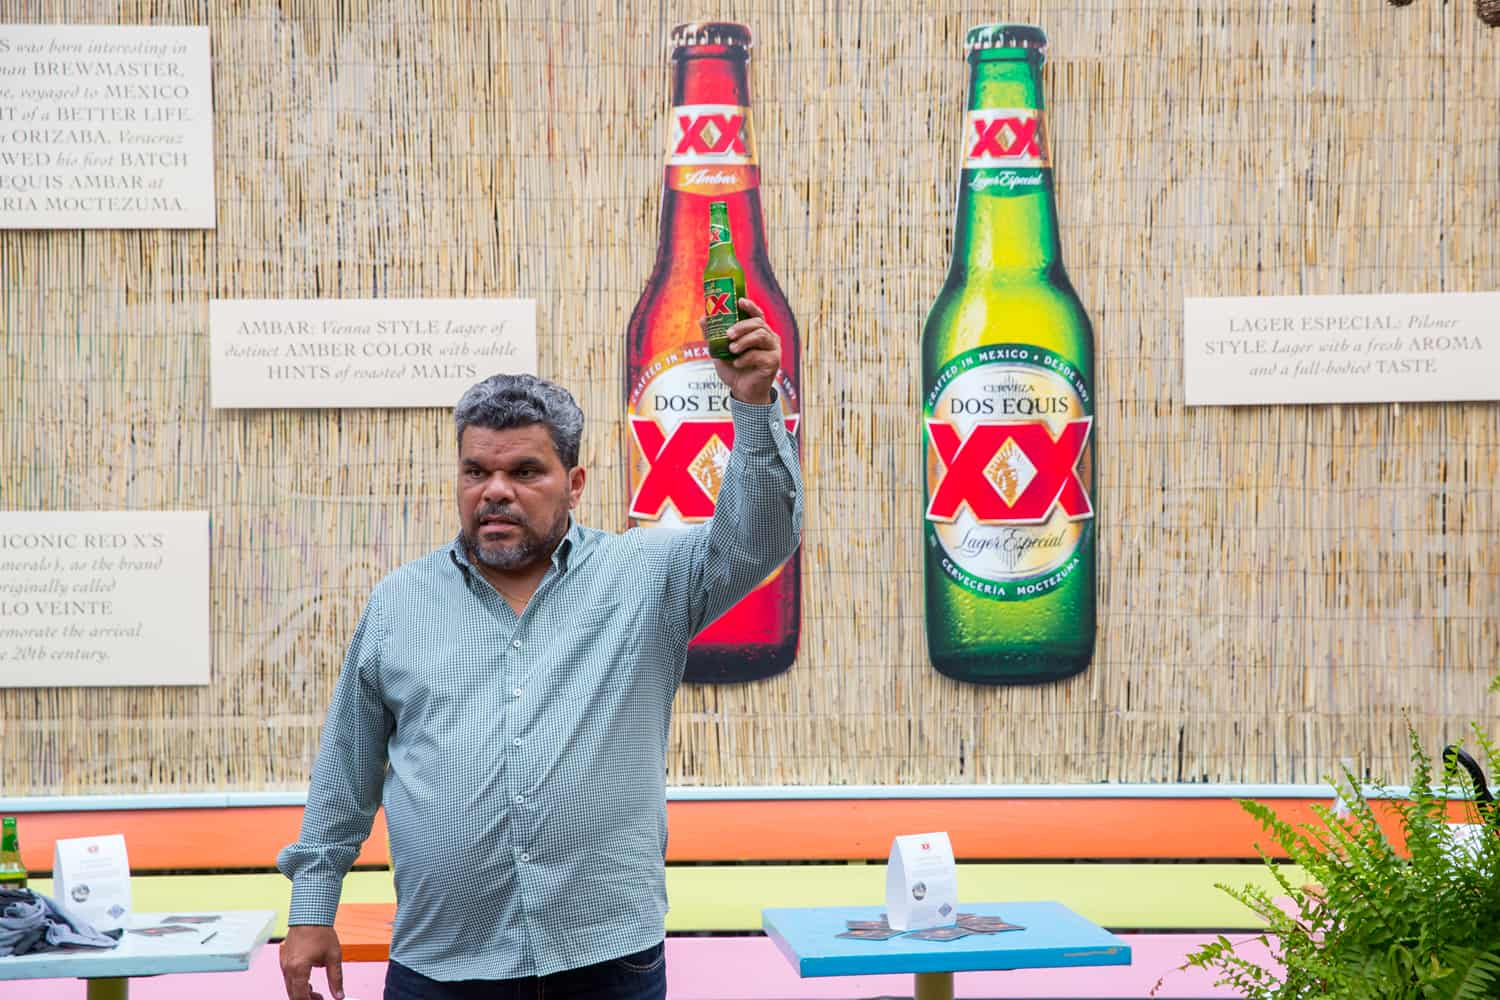 Does Equis spokesman Luis Guzman holding beer in Most Interesting Person Index